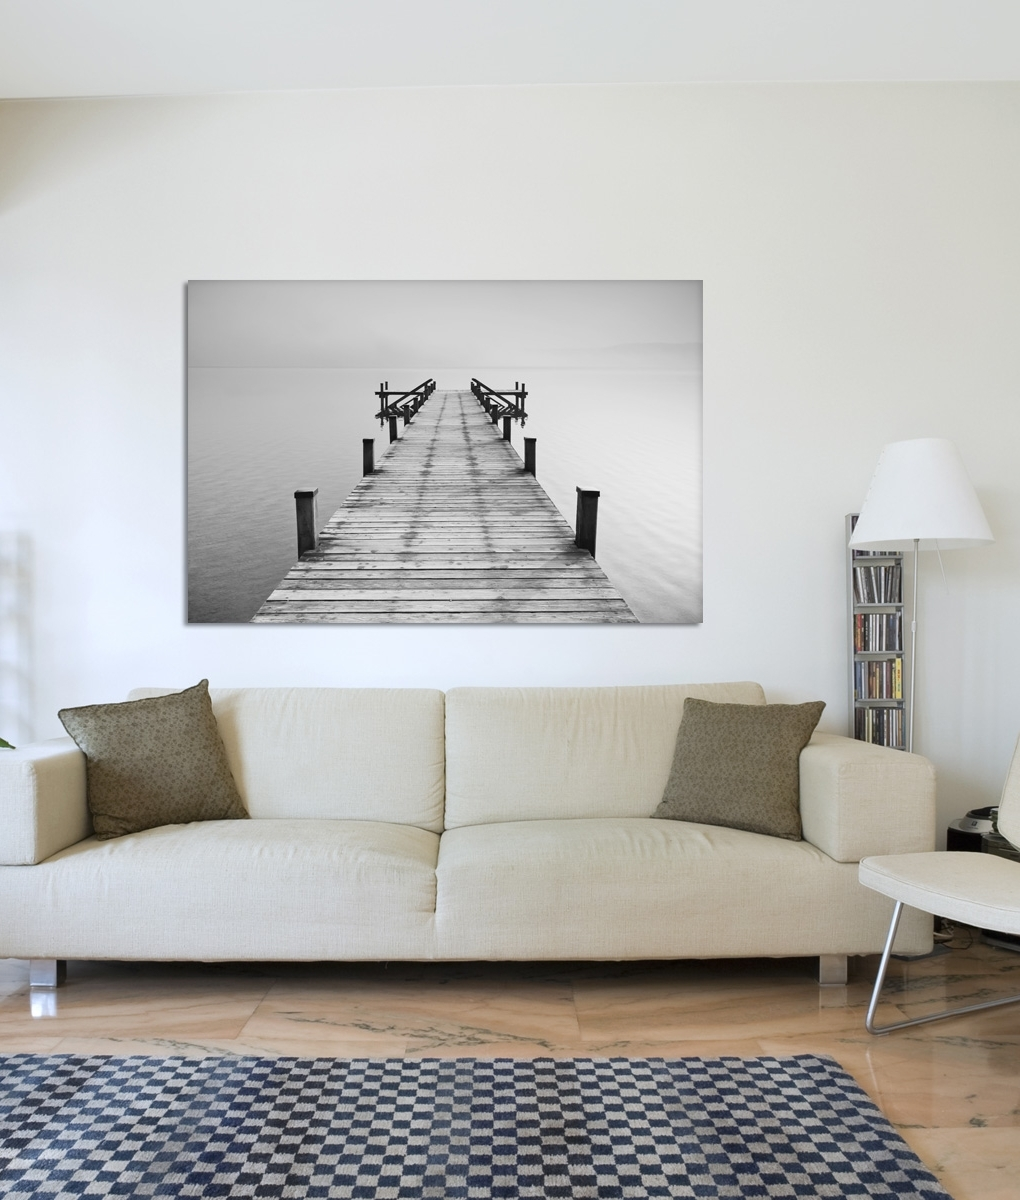 Fashionable Jetty Canvas Wall Art Intended For B&w Jetty Canvas Print (View 6 of 15)